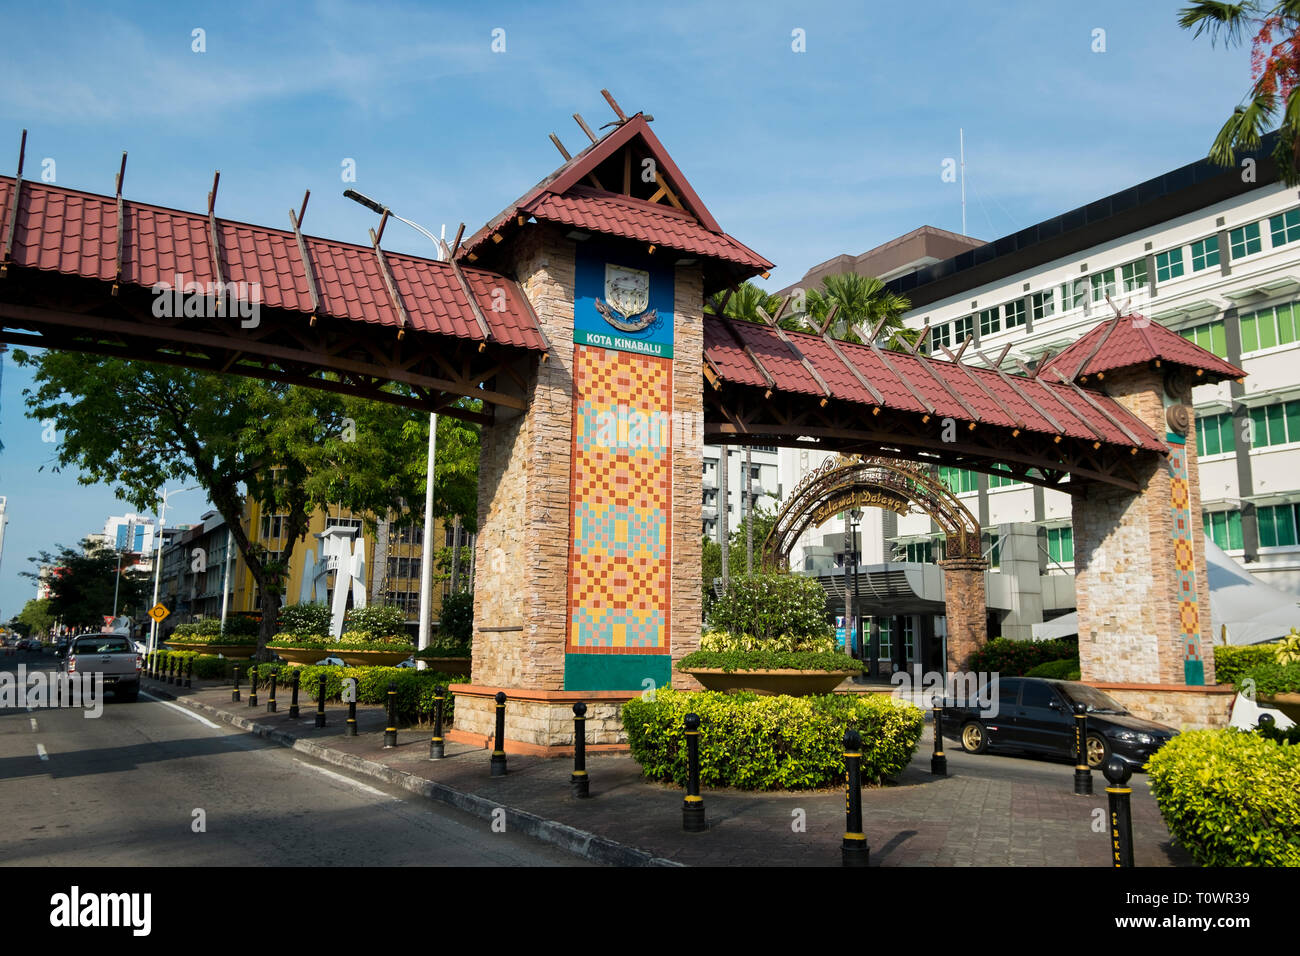 The gate to the city, decorated in traditional motifs, in Kota Kinabalu, Sabah, Borneo, Malaysia. - Stock Image